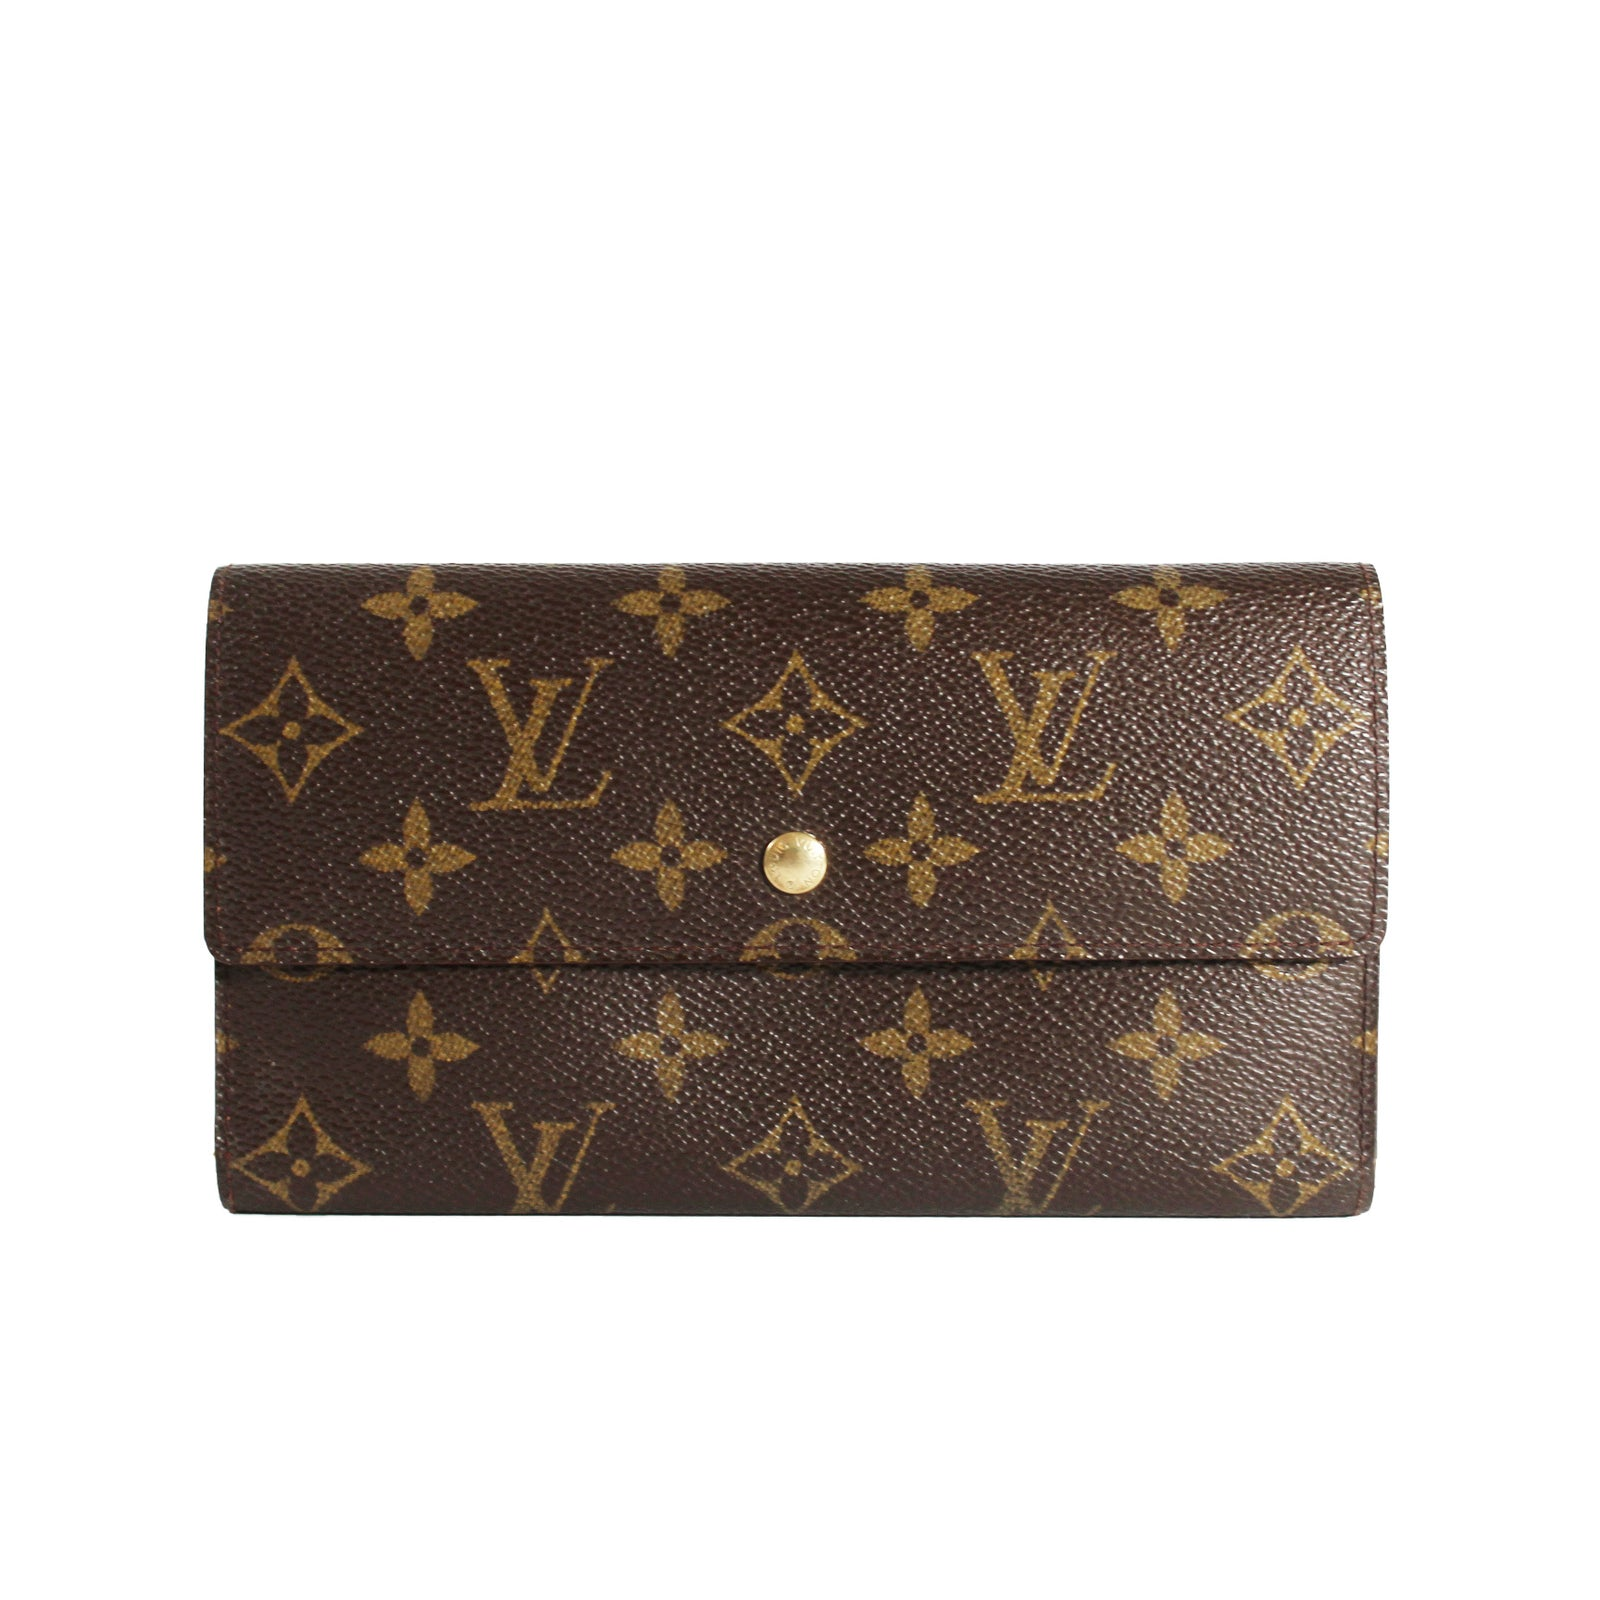 Monogram International Wallet